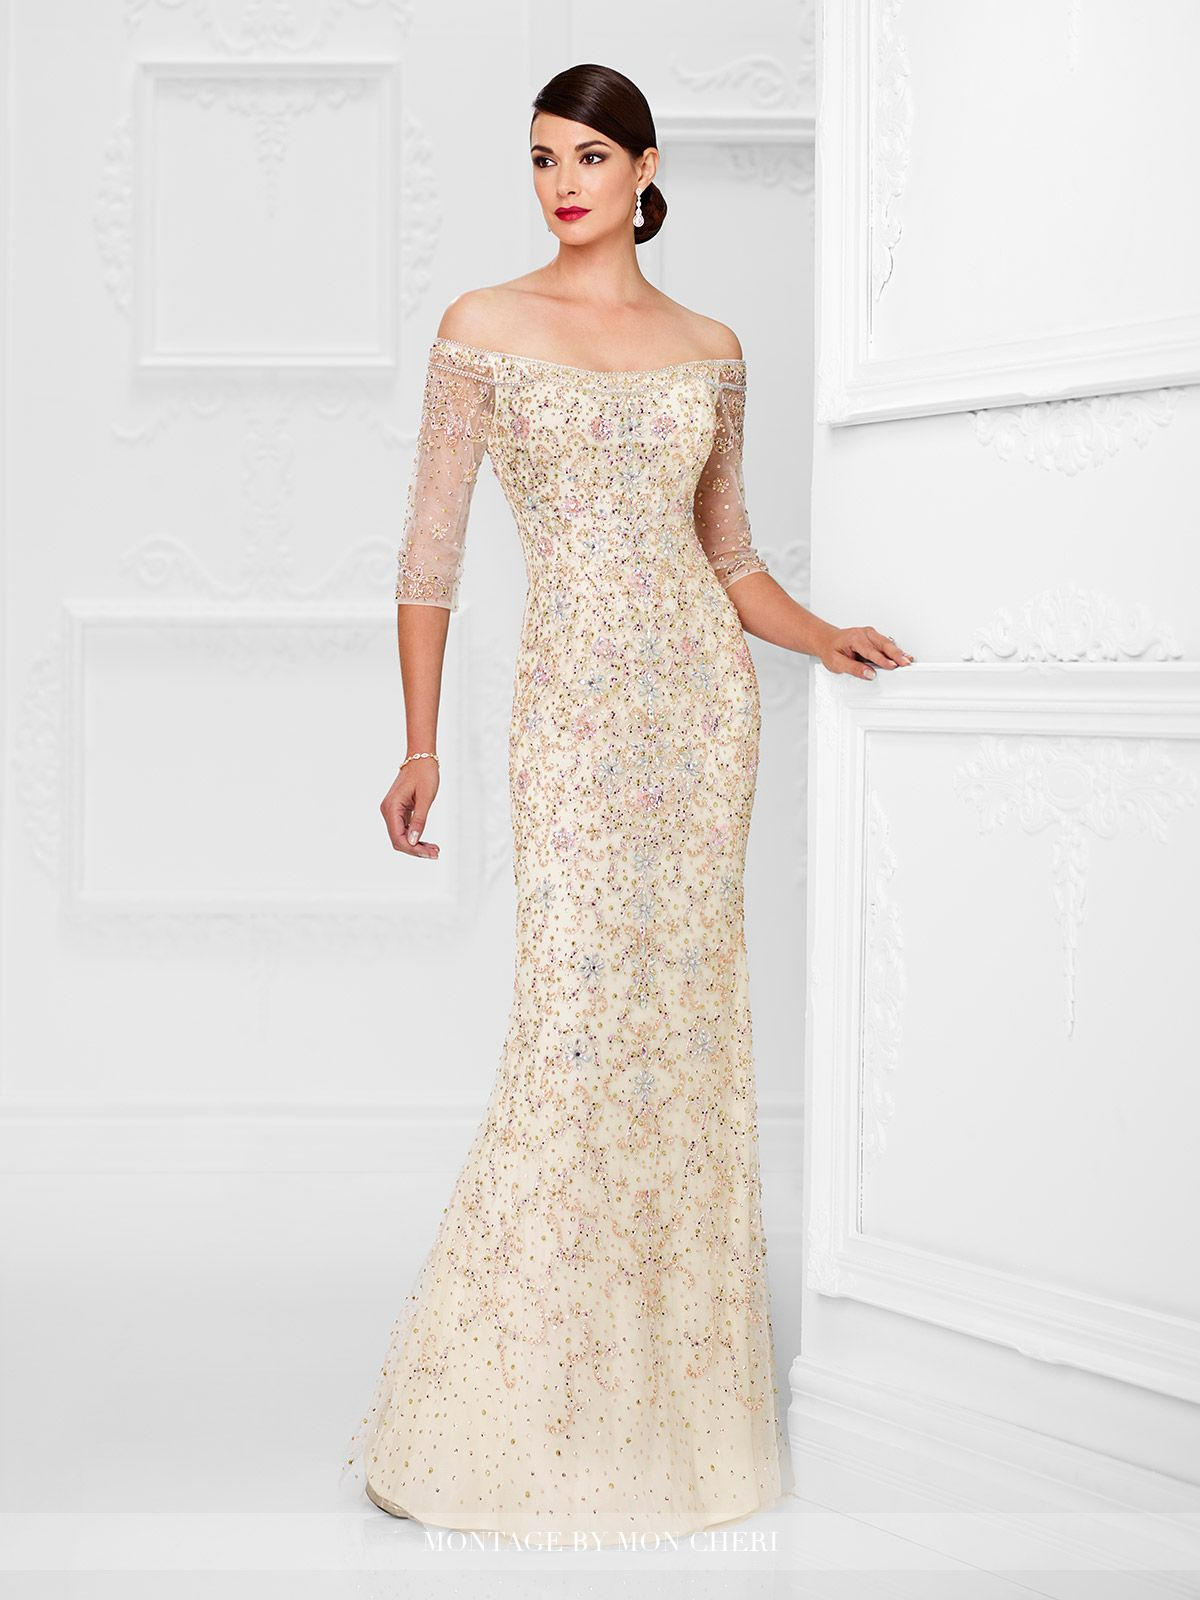 c72bf32e067 Off-the-shoulder tulle sheath encrusted with hand-beading features beaded  illusion three-quarter length sleeves. Sizes  4 – 20 Colors  Ivory Multi